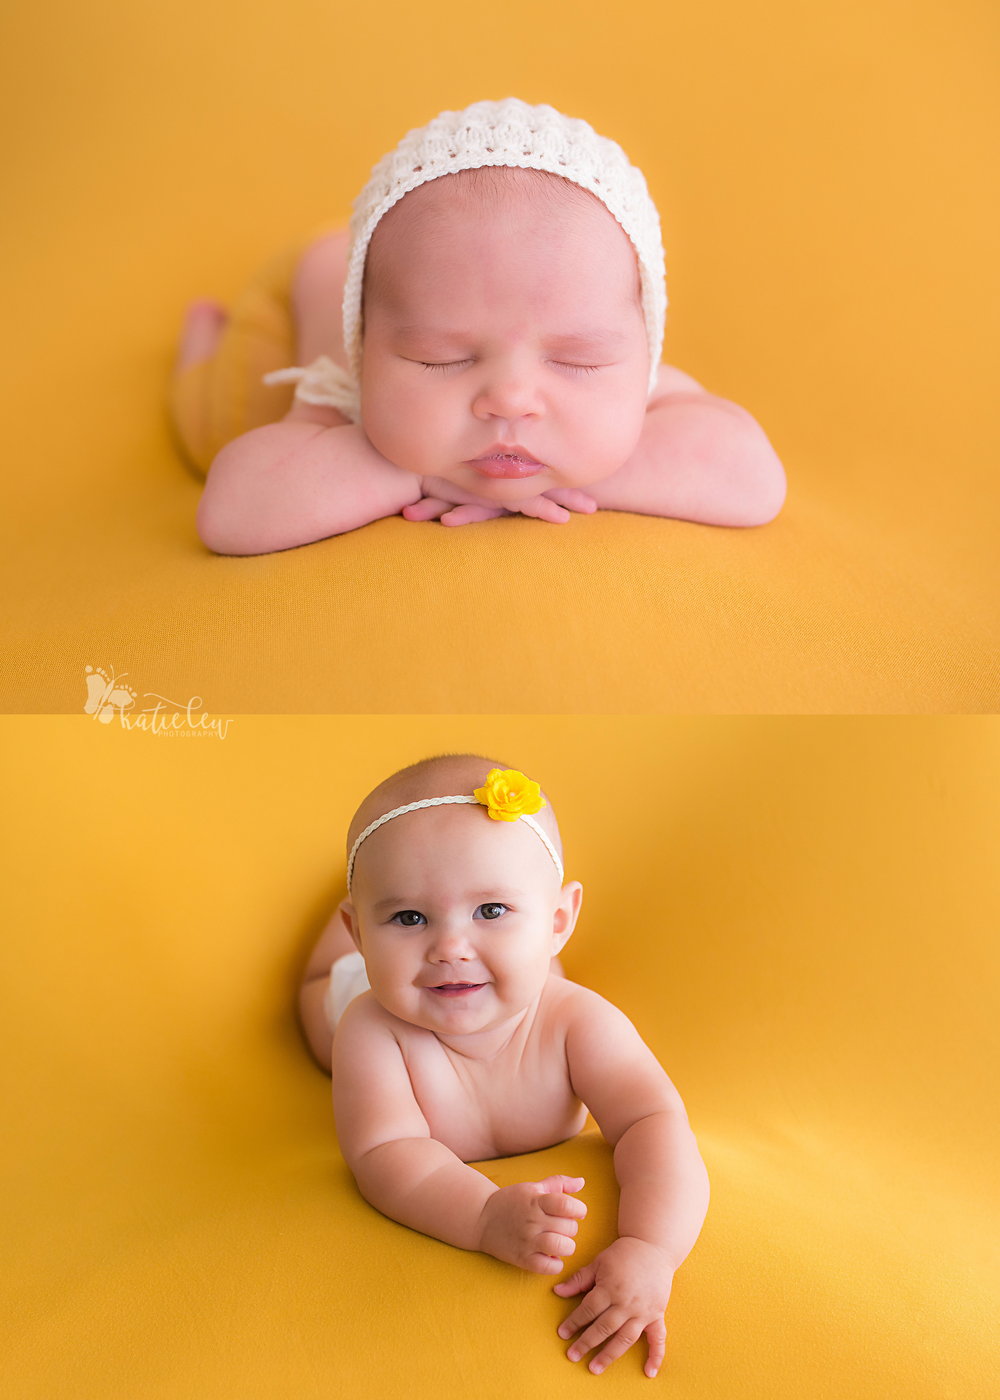 newborn baby girl and her again at 6 months for a sweet comparison picture